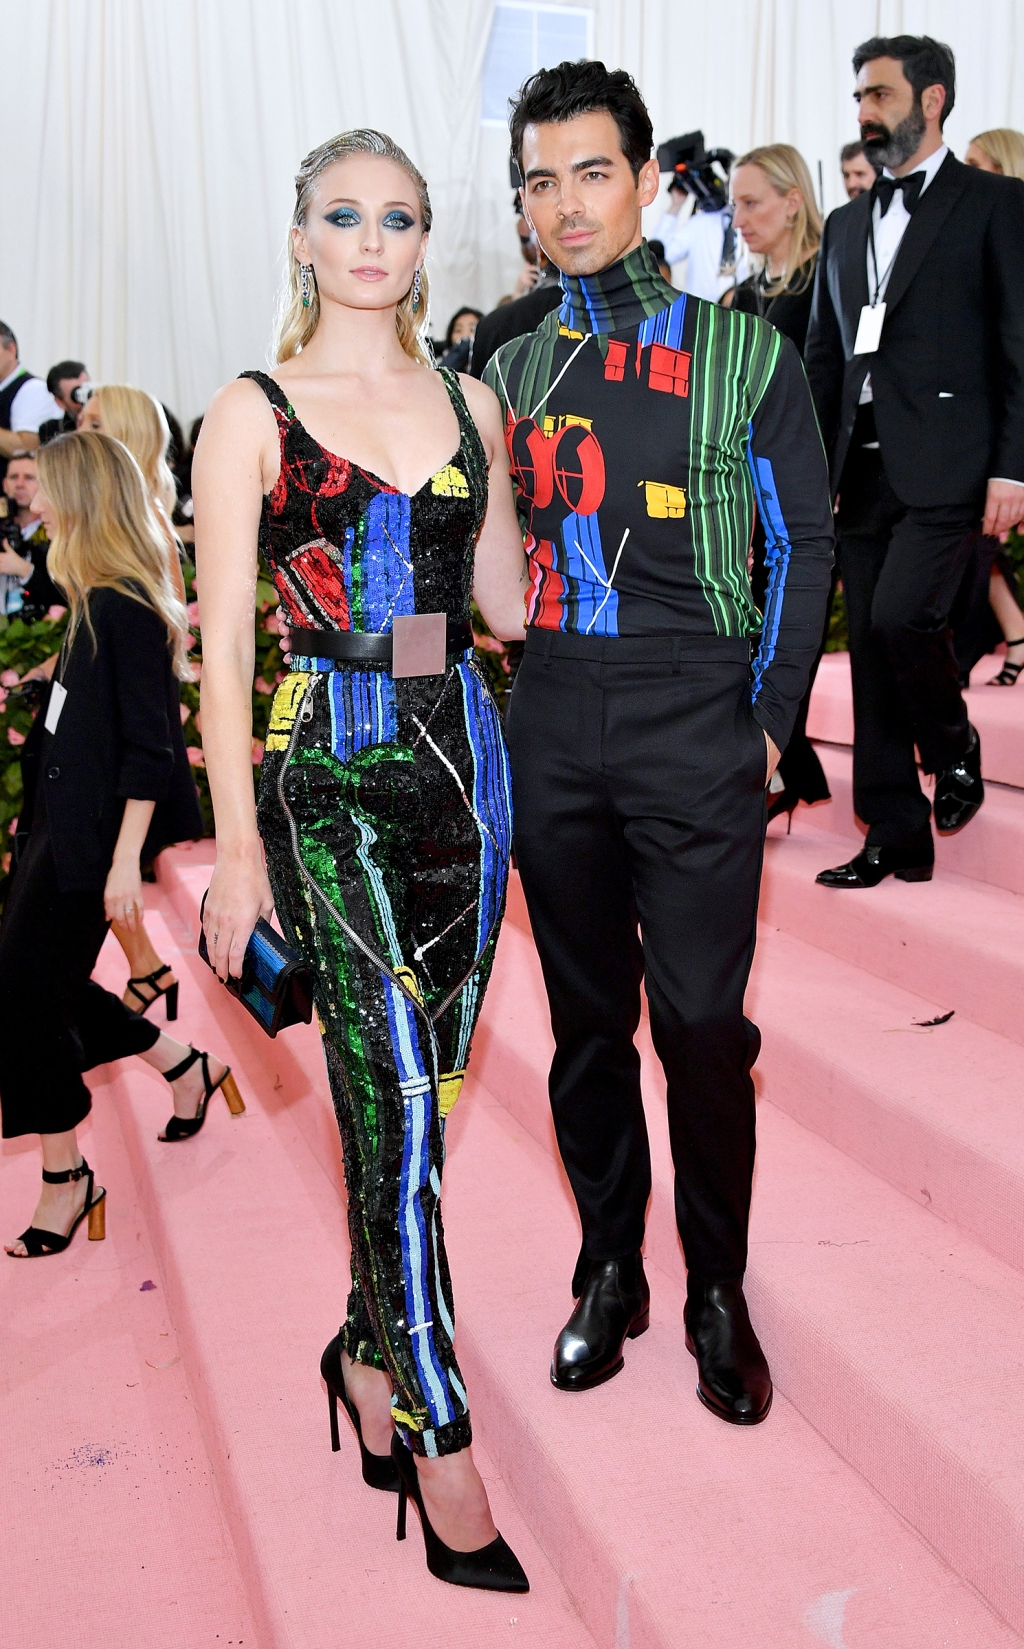 Sophie Turner and Joe Jonas attend The 2019 Met Gala Celebrating Camp: Notes on Fashion at Metropolitan Museum of Art on May 06, 2019 in New York City.